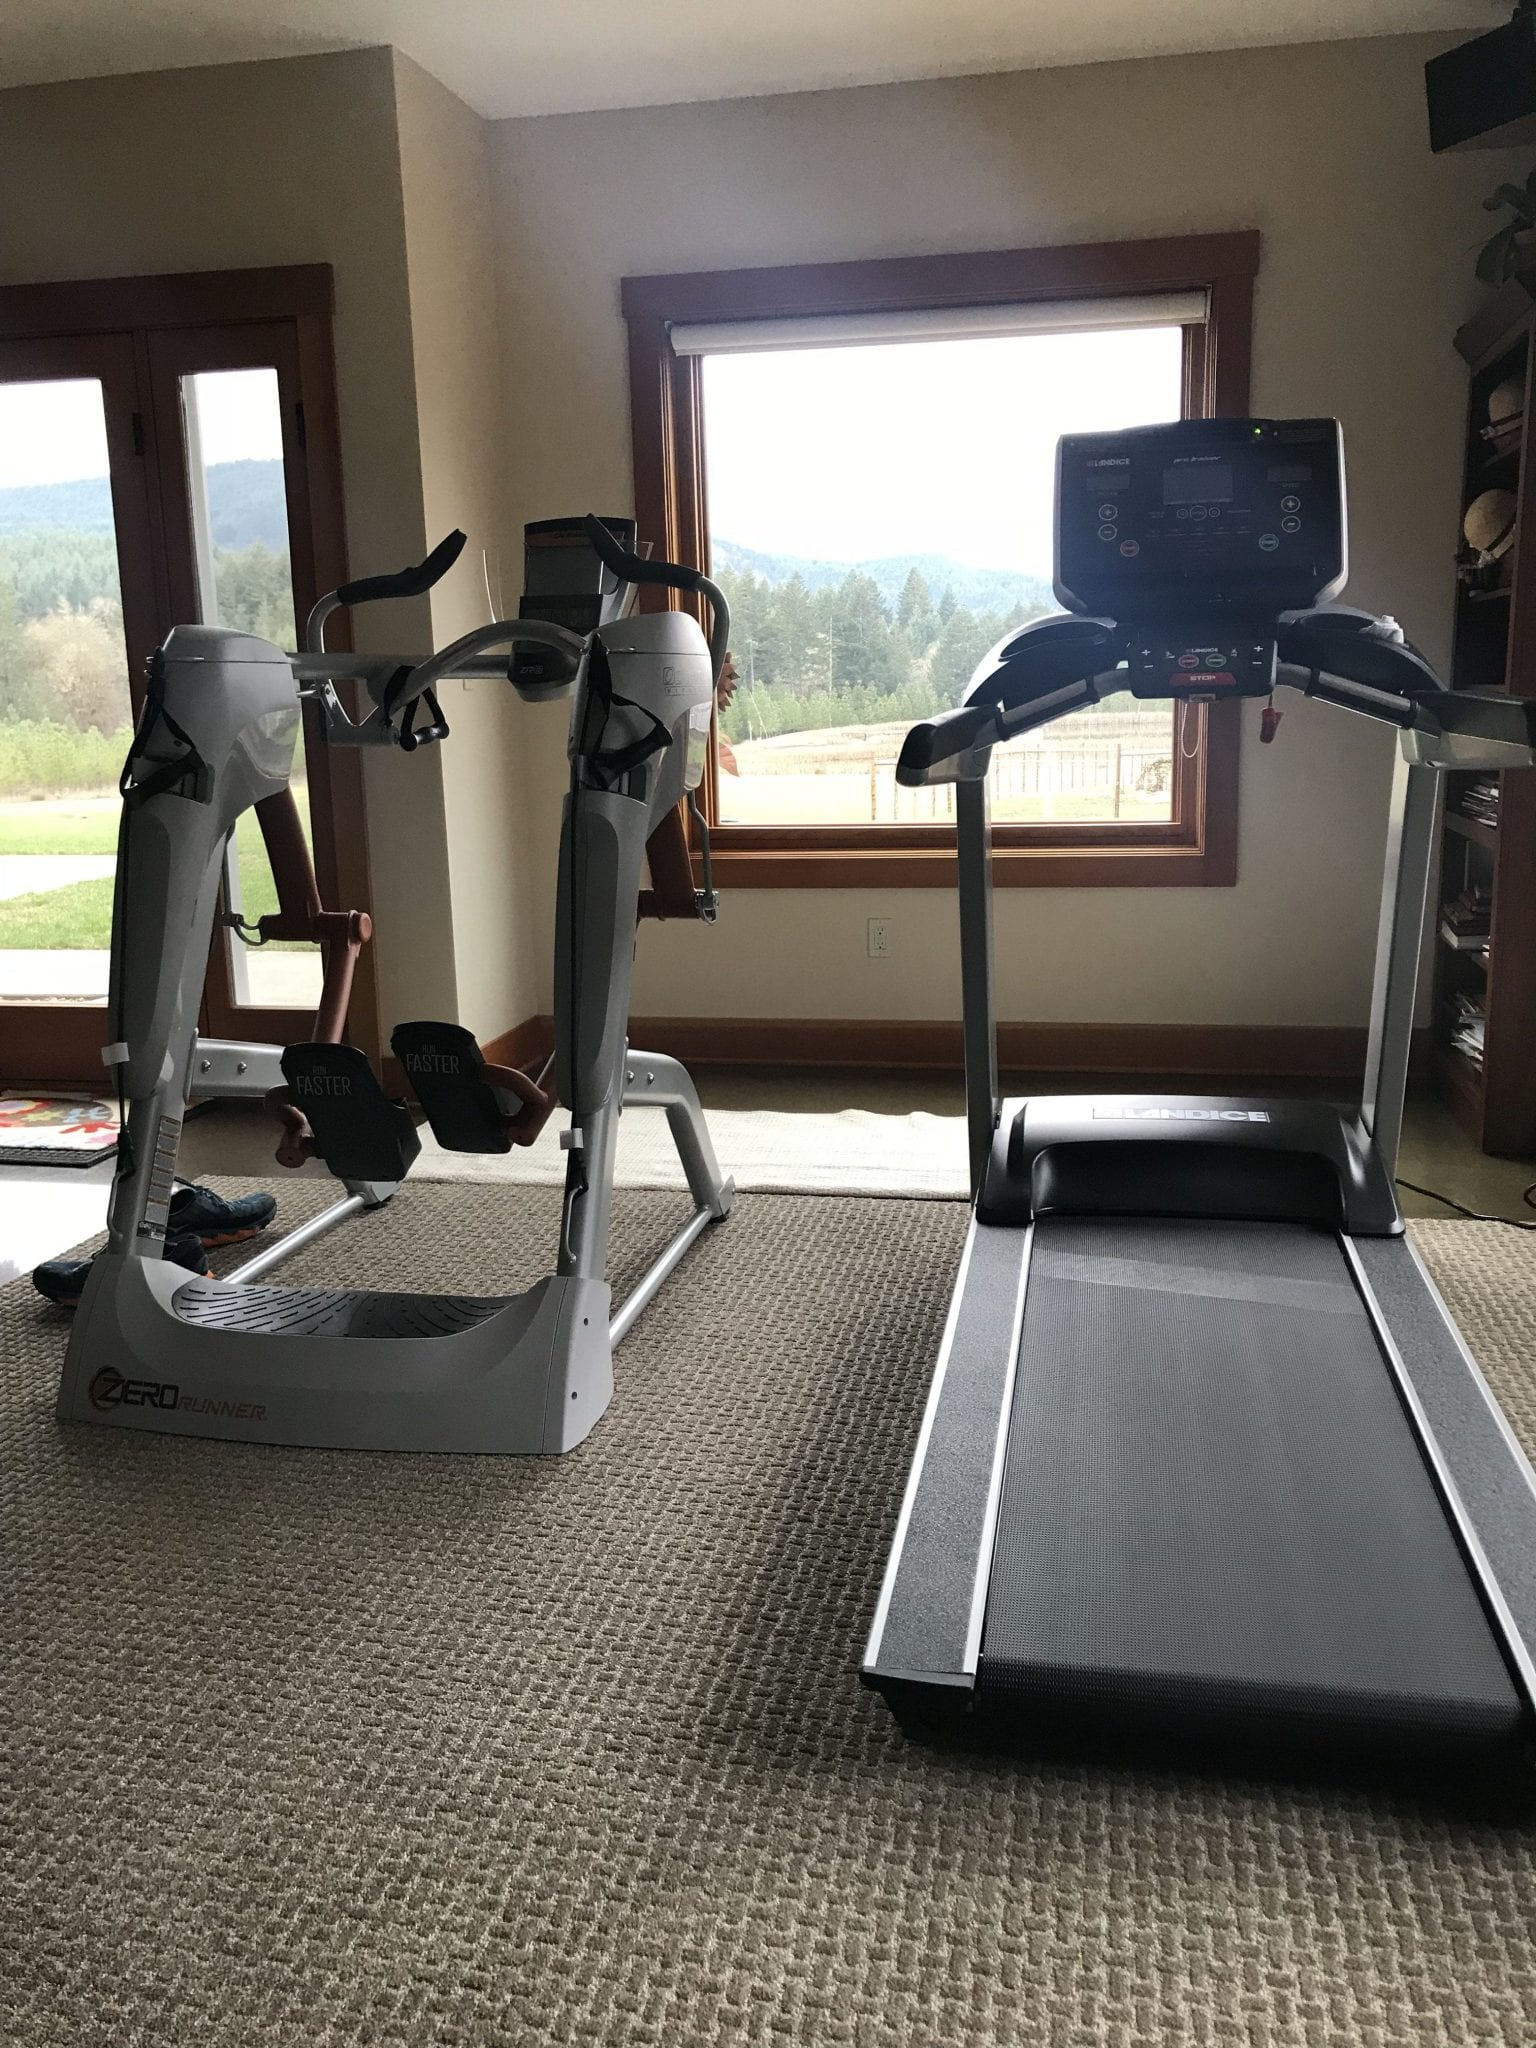 Home Sales And Services Fitness Equipment Of Eugene